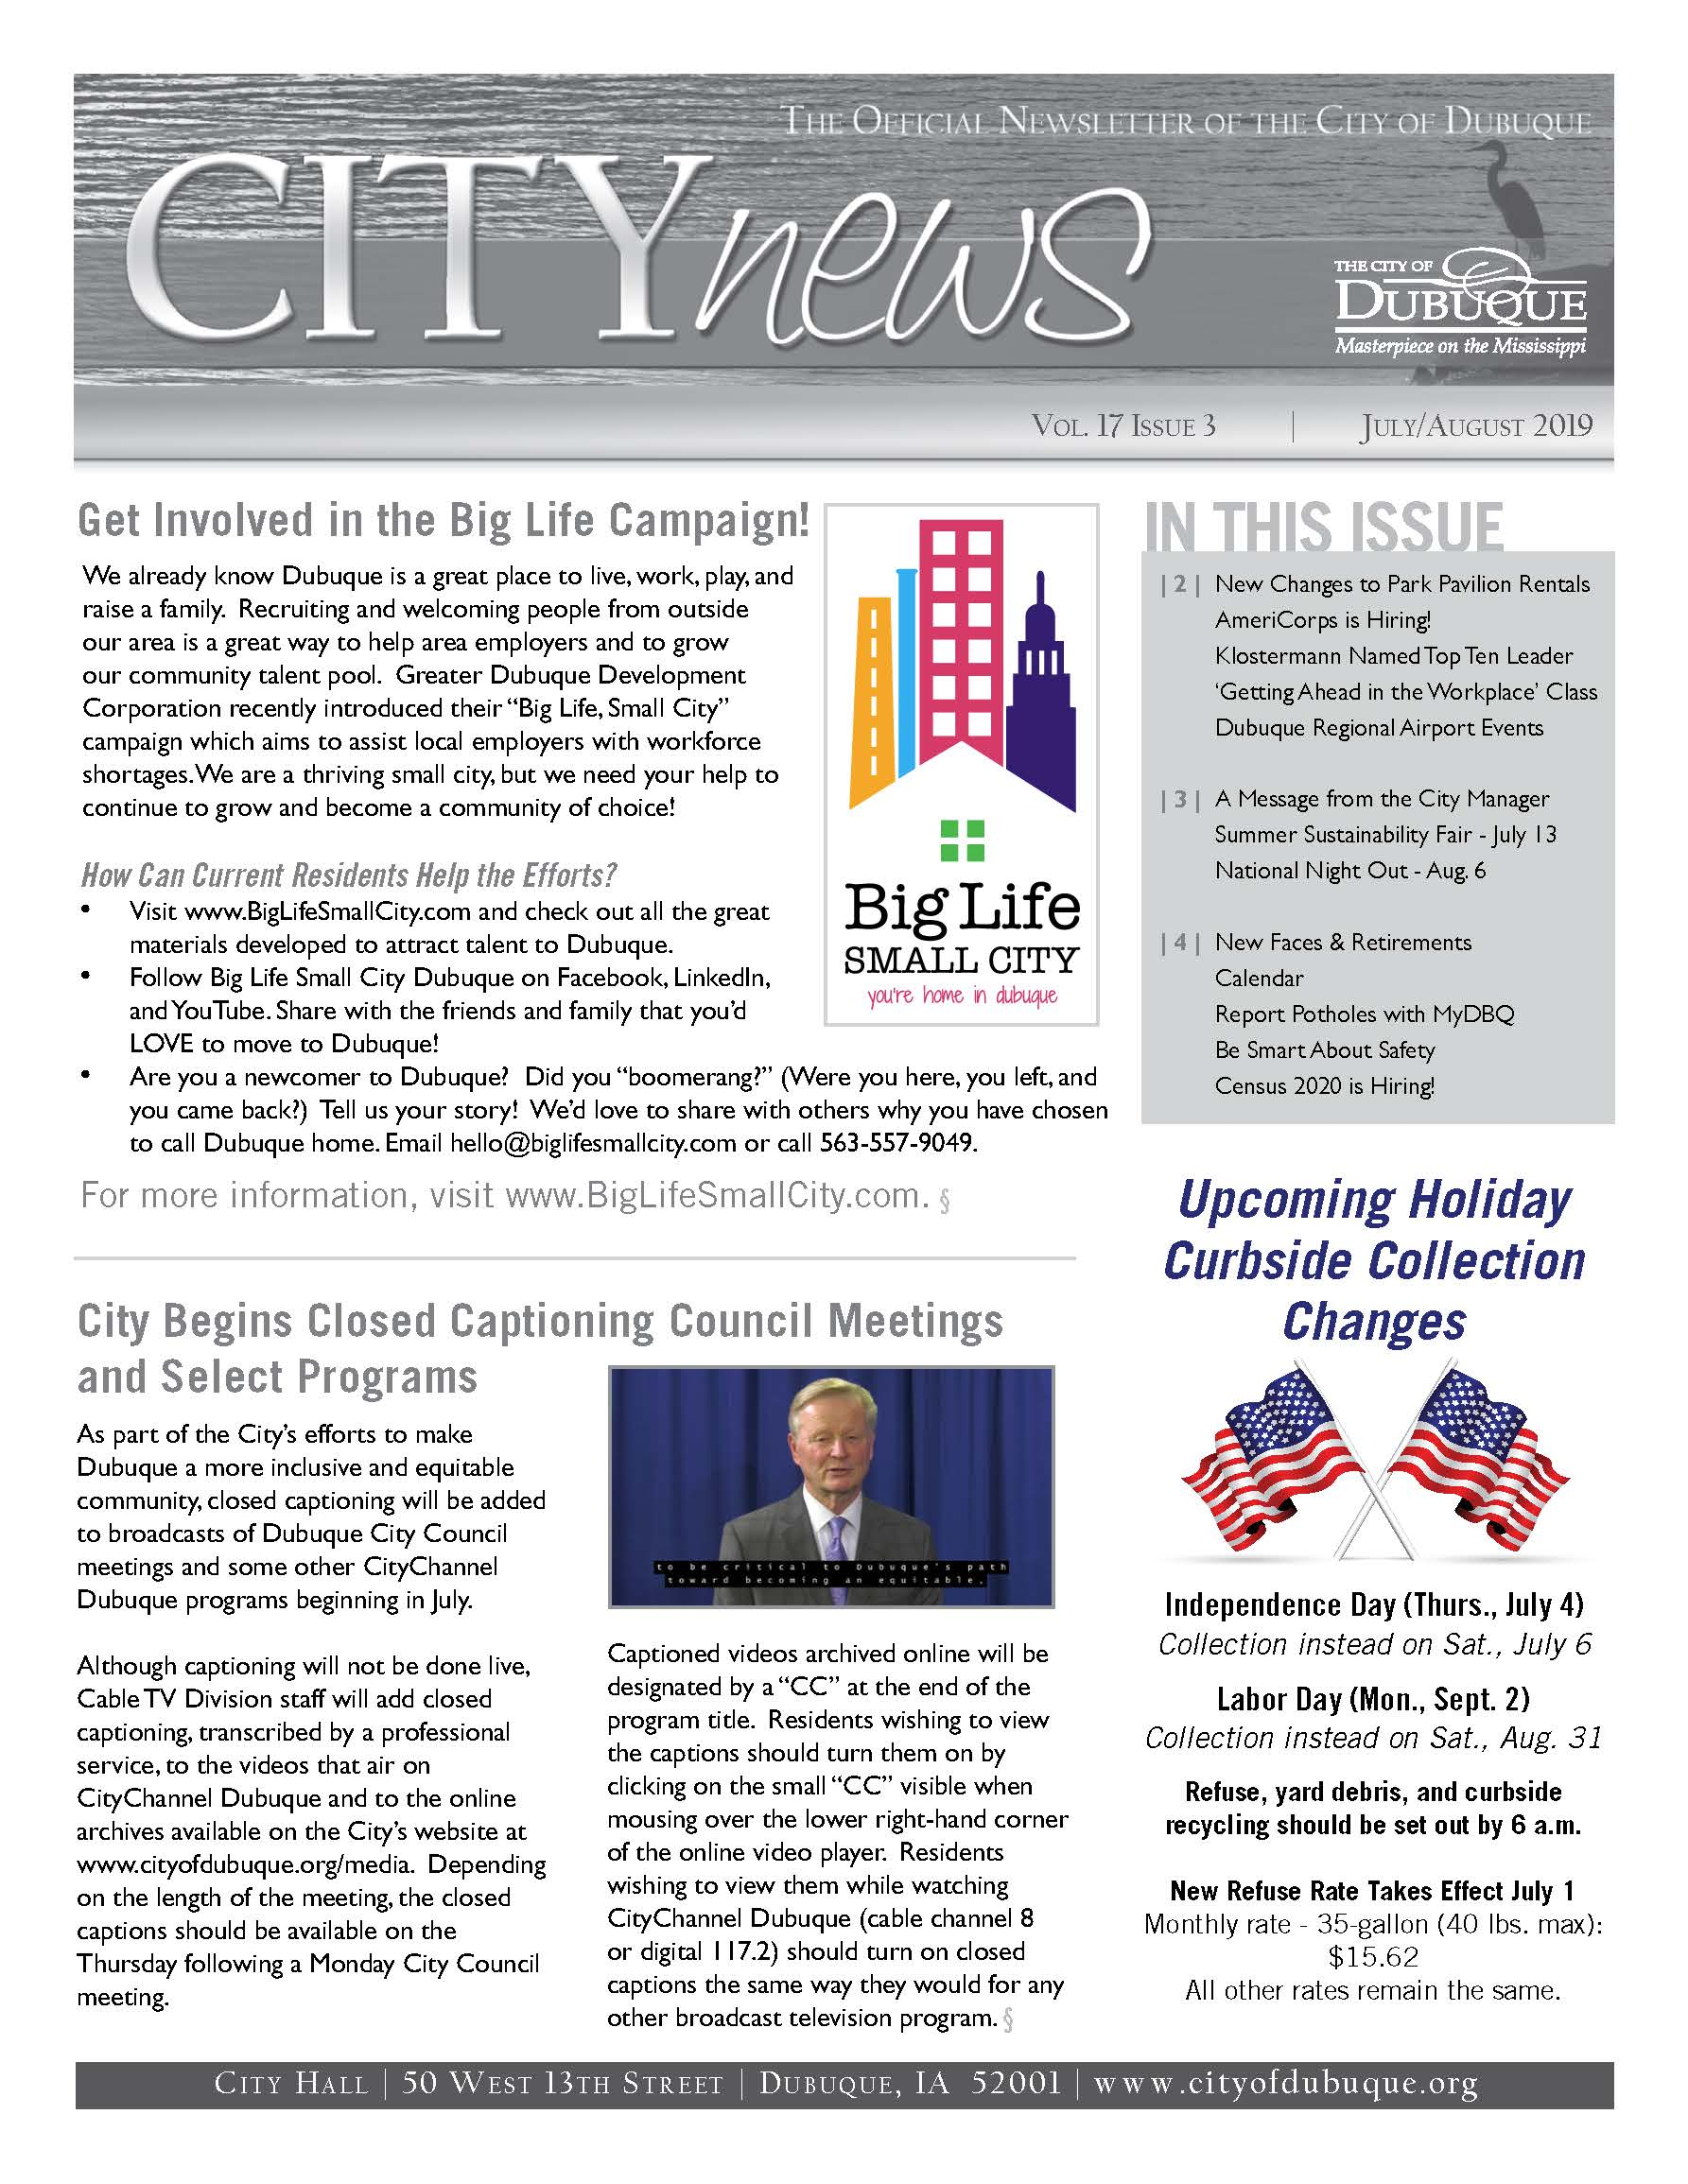 July/August 2019 City News